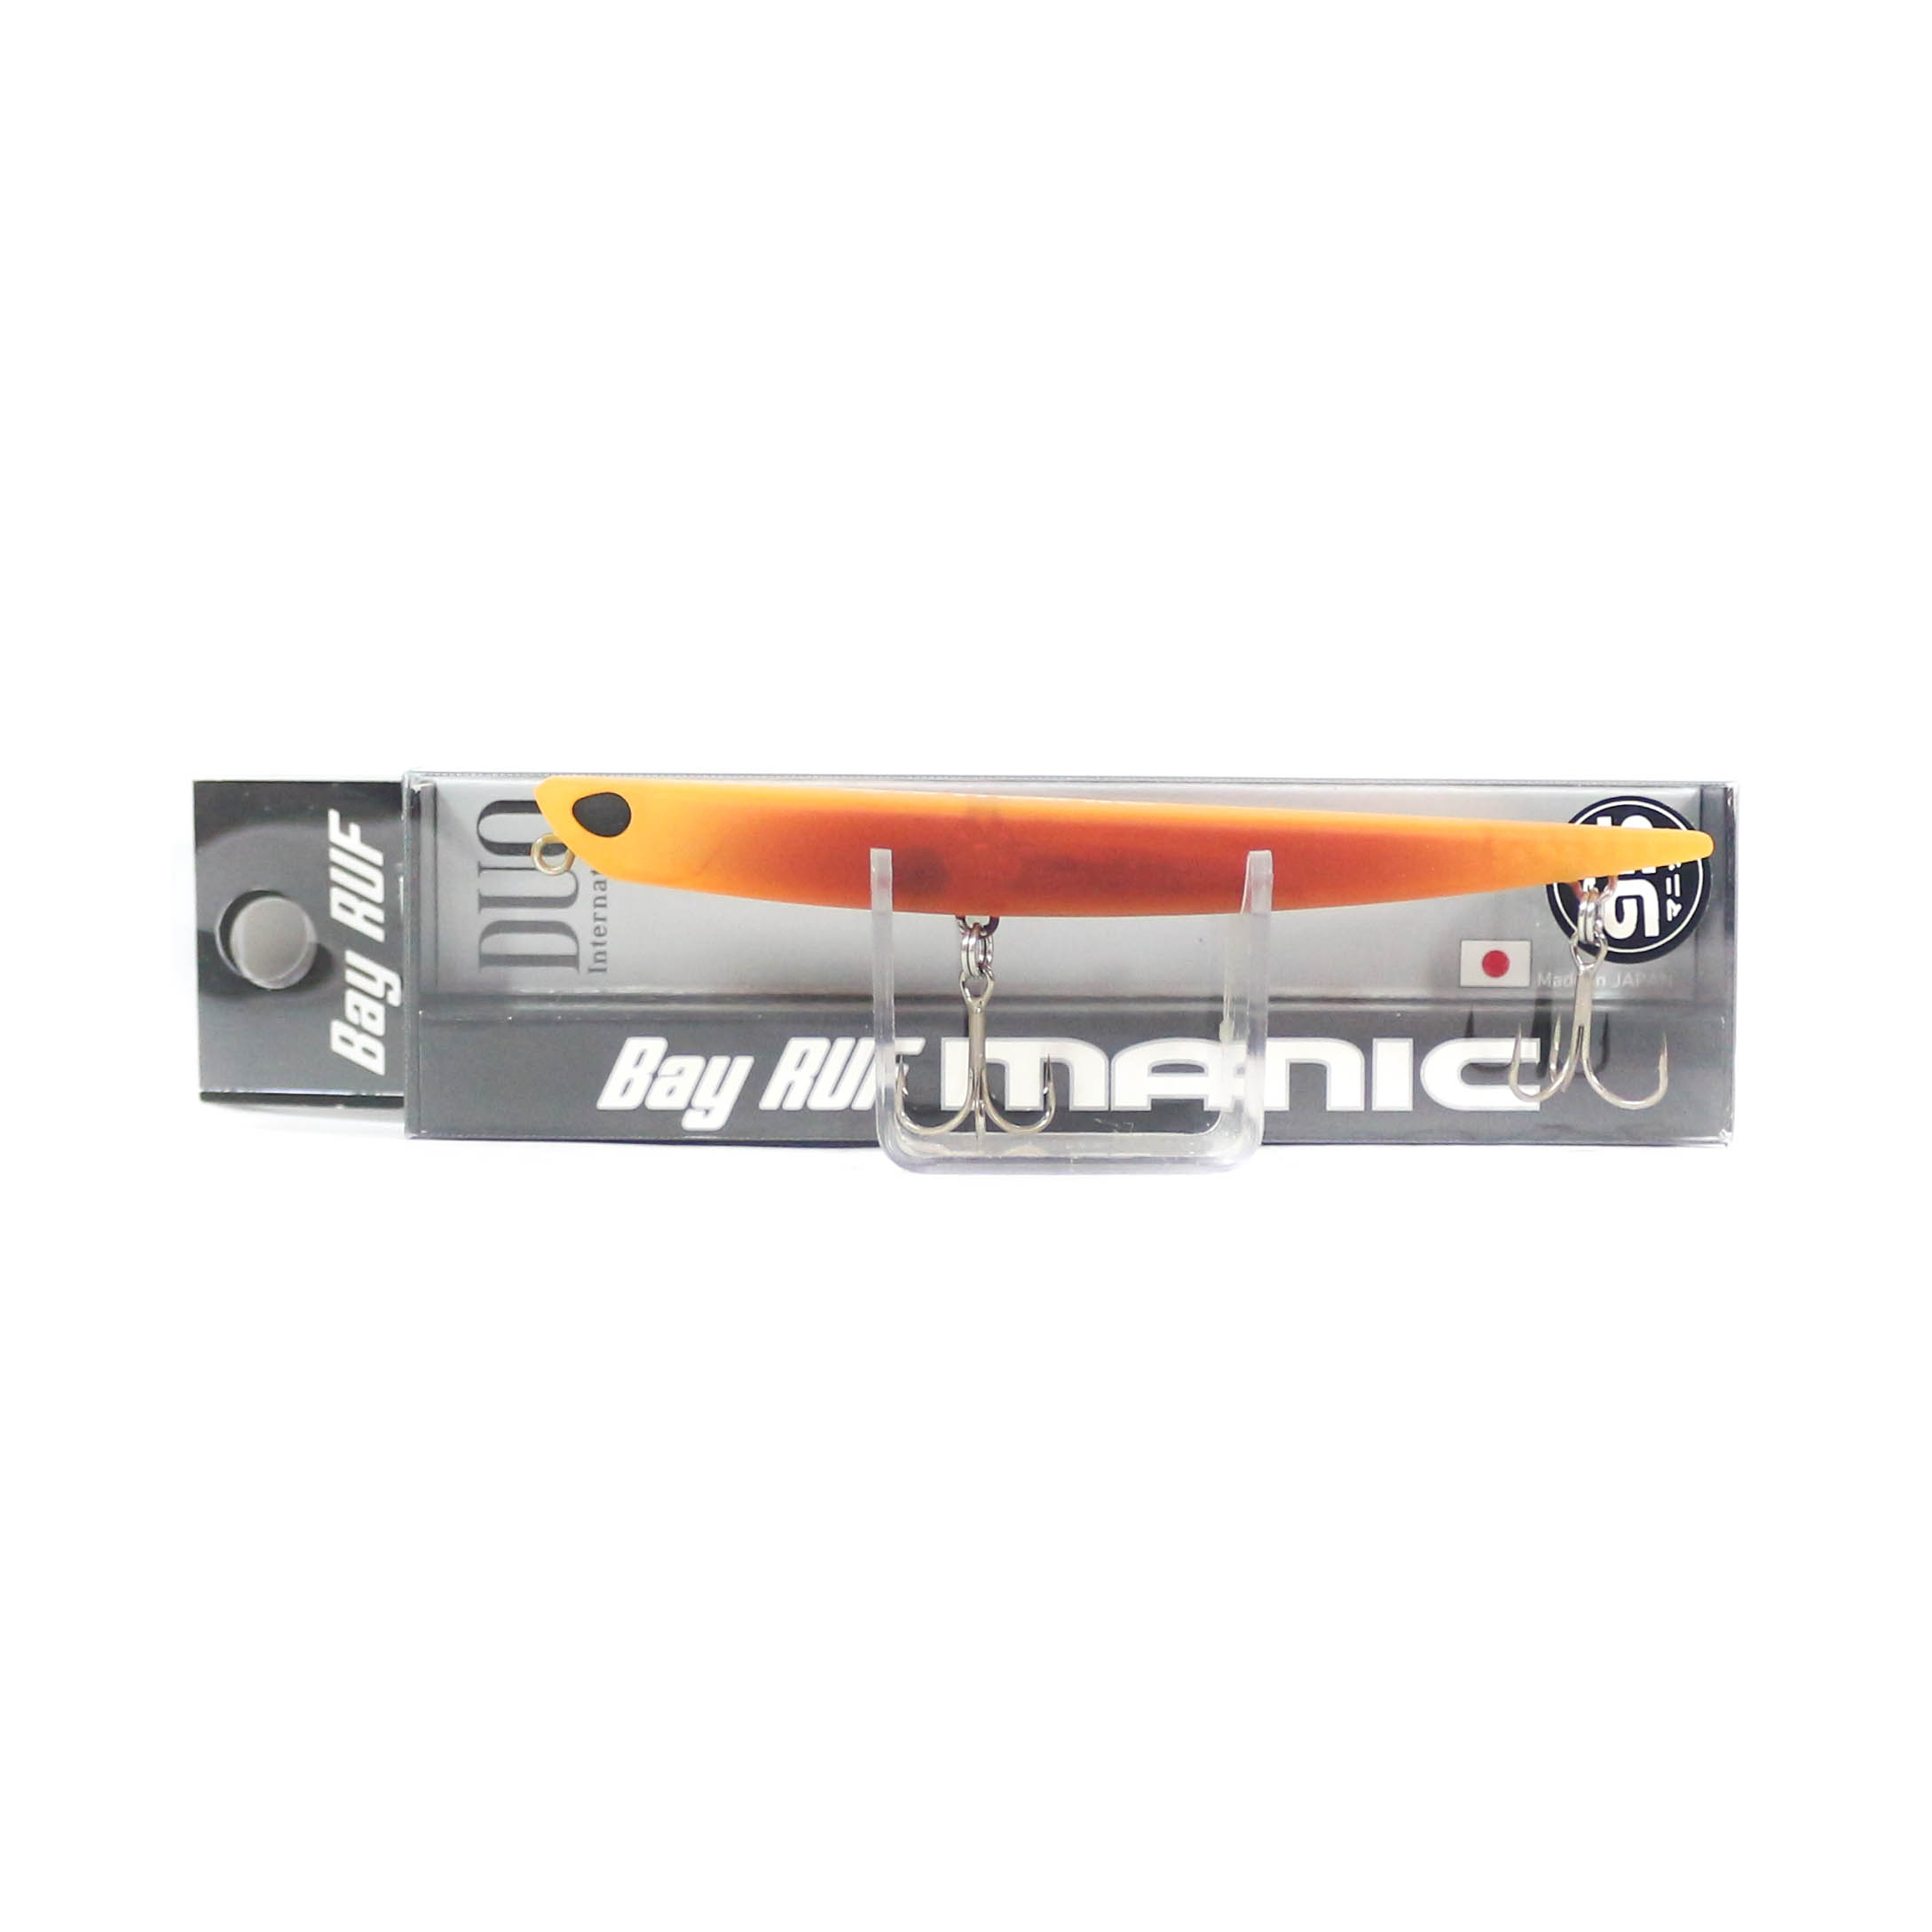 Duo Bay Ruf Manic 95 Pencil Sinking Lure CCC0255 (3734)